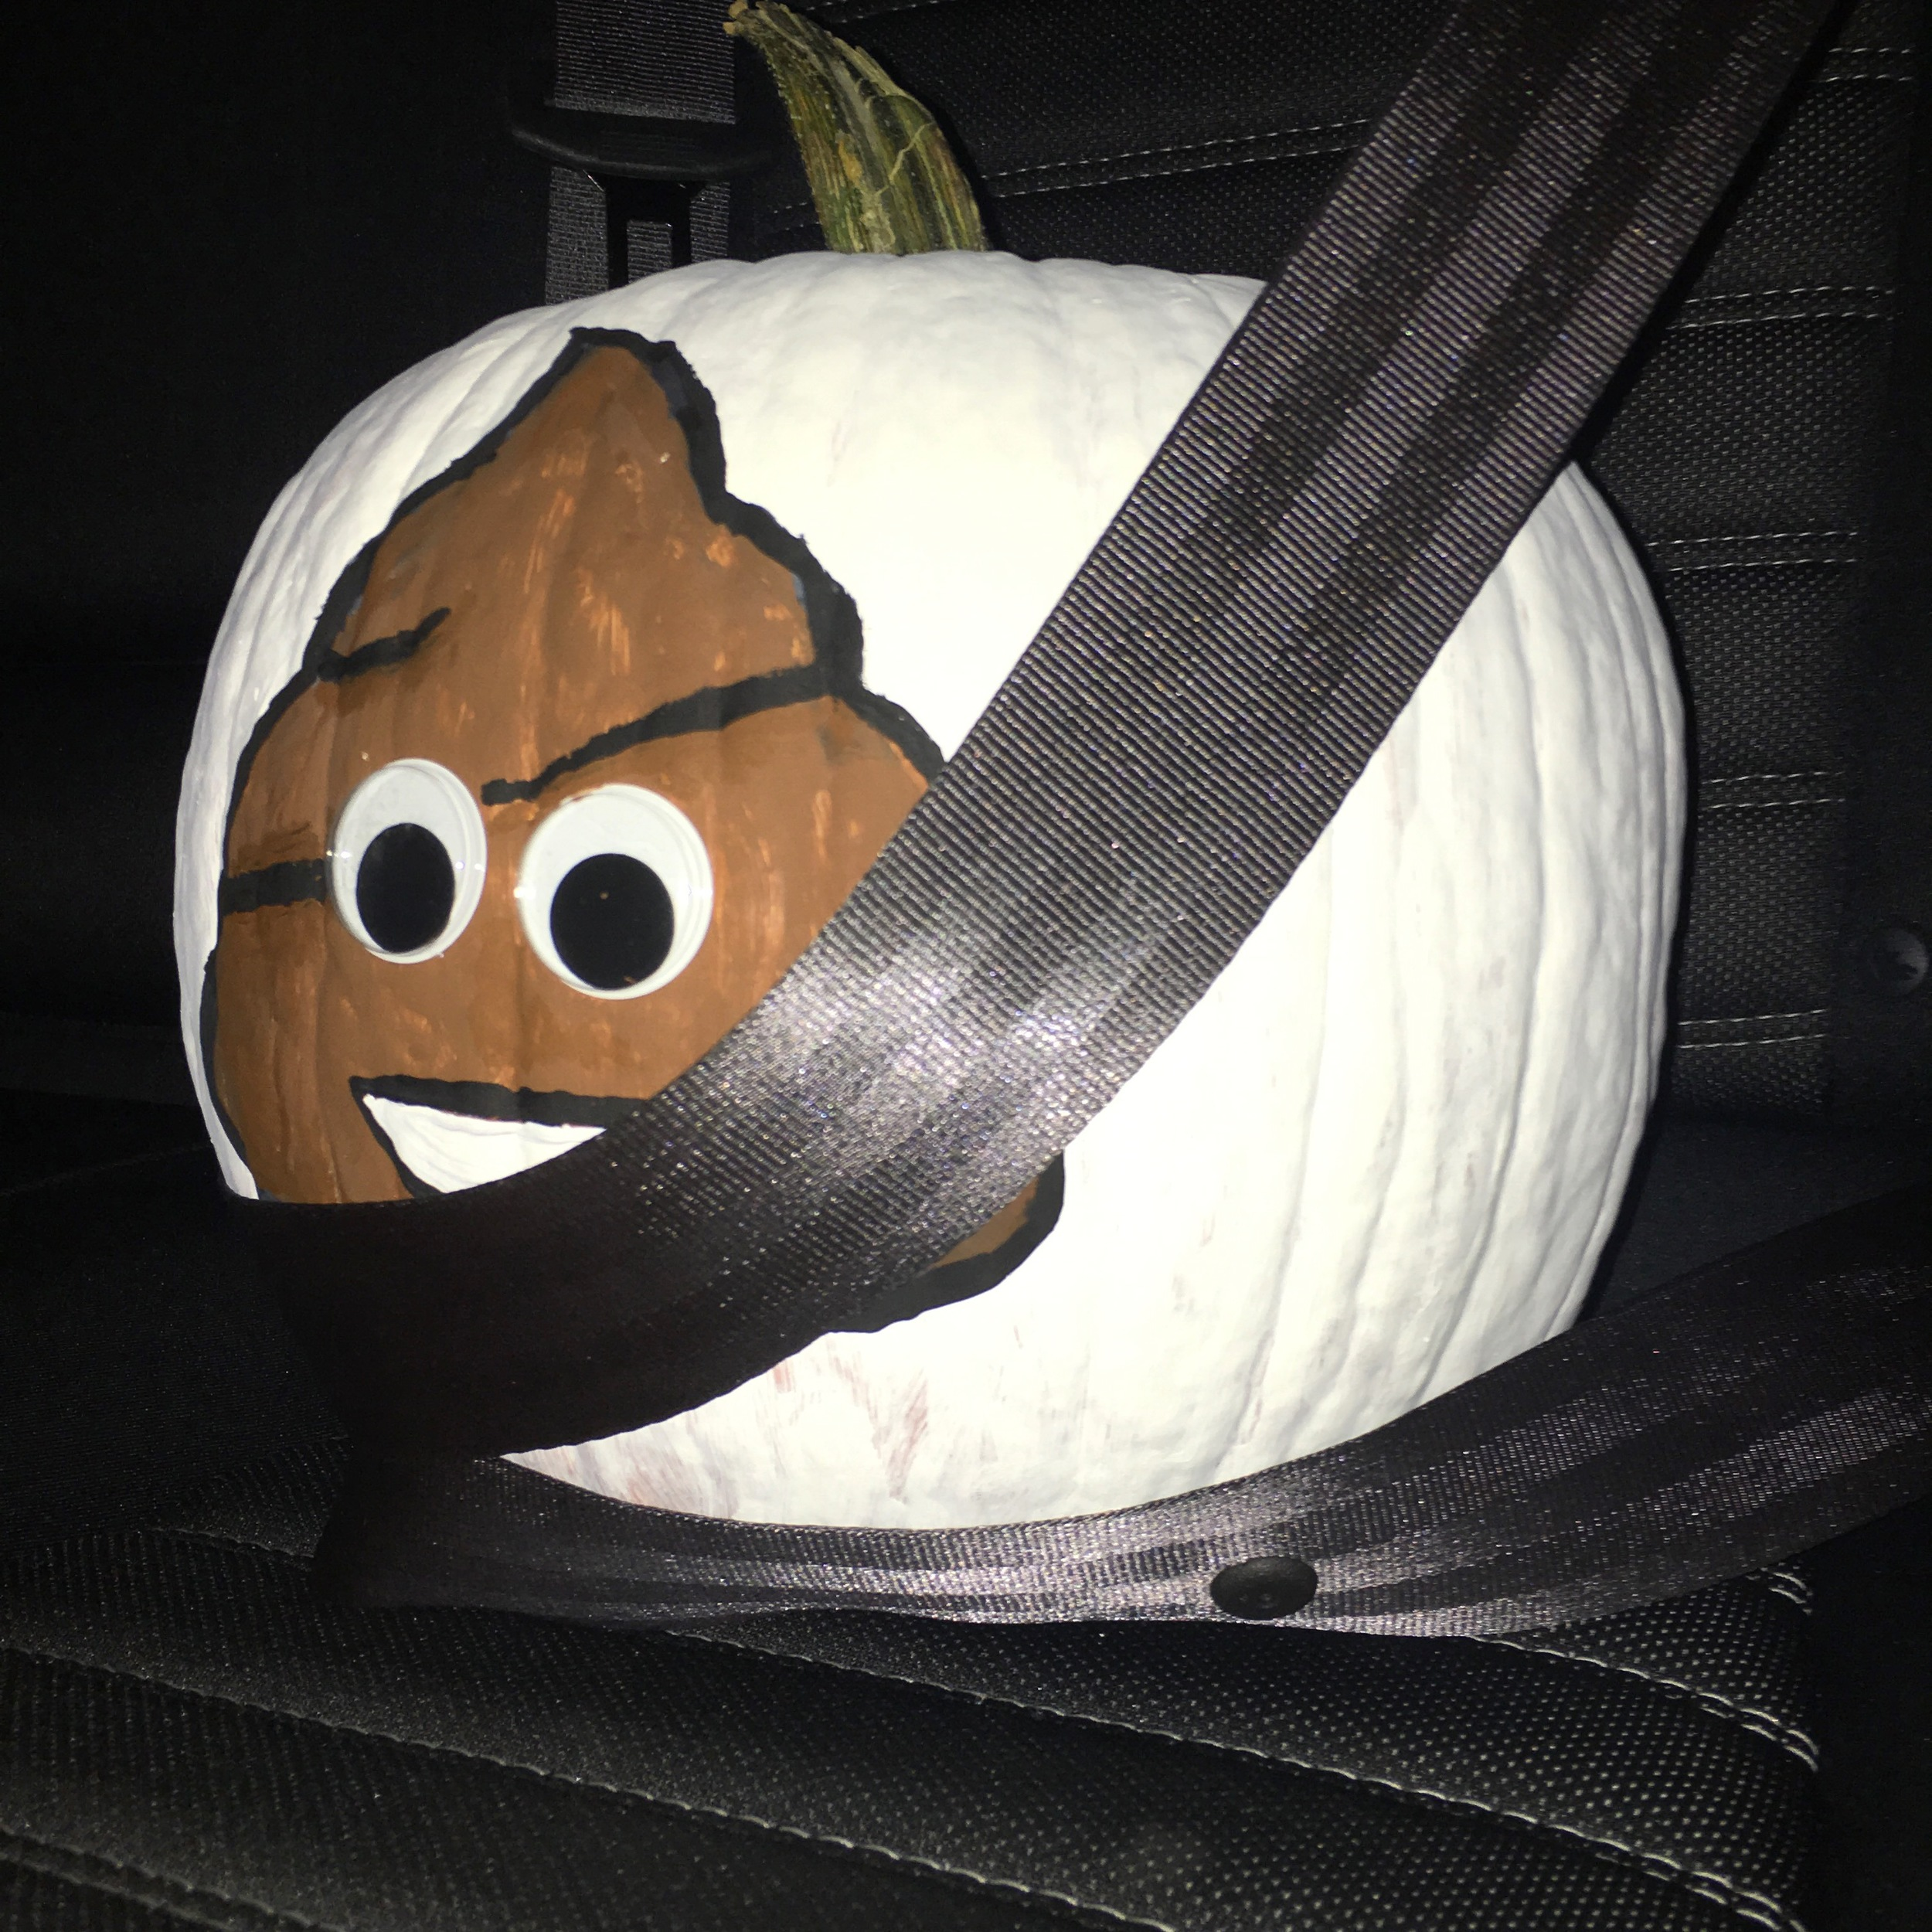 Safety first, especially when traveling home with your emoji painted pumpkin.